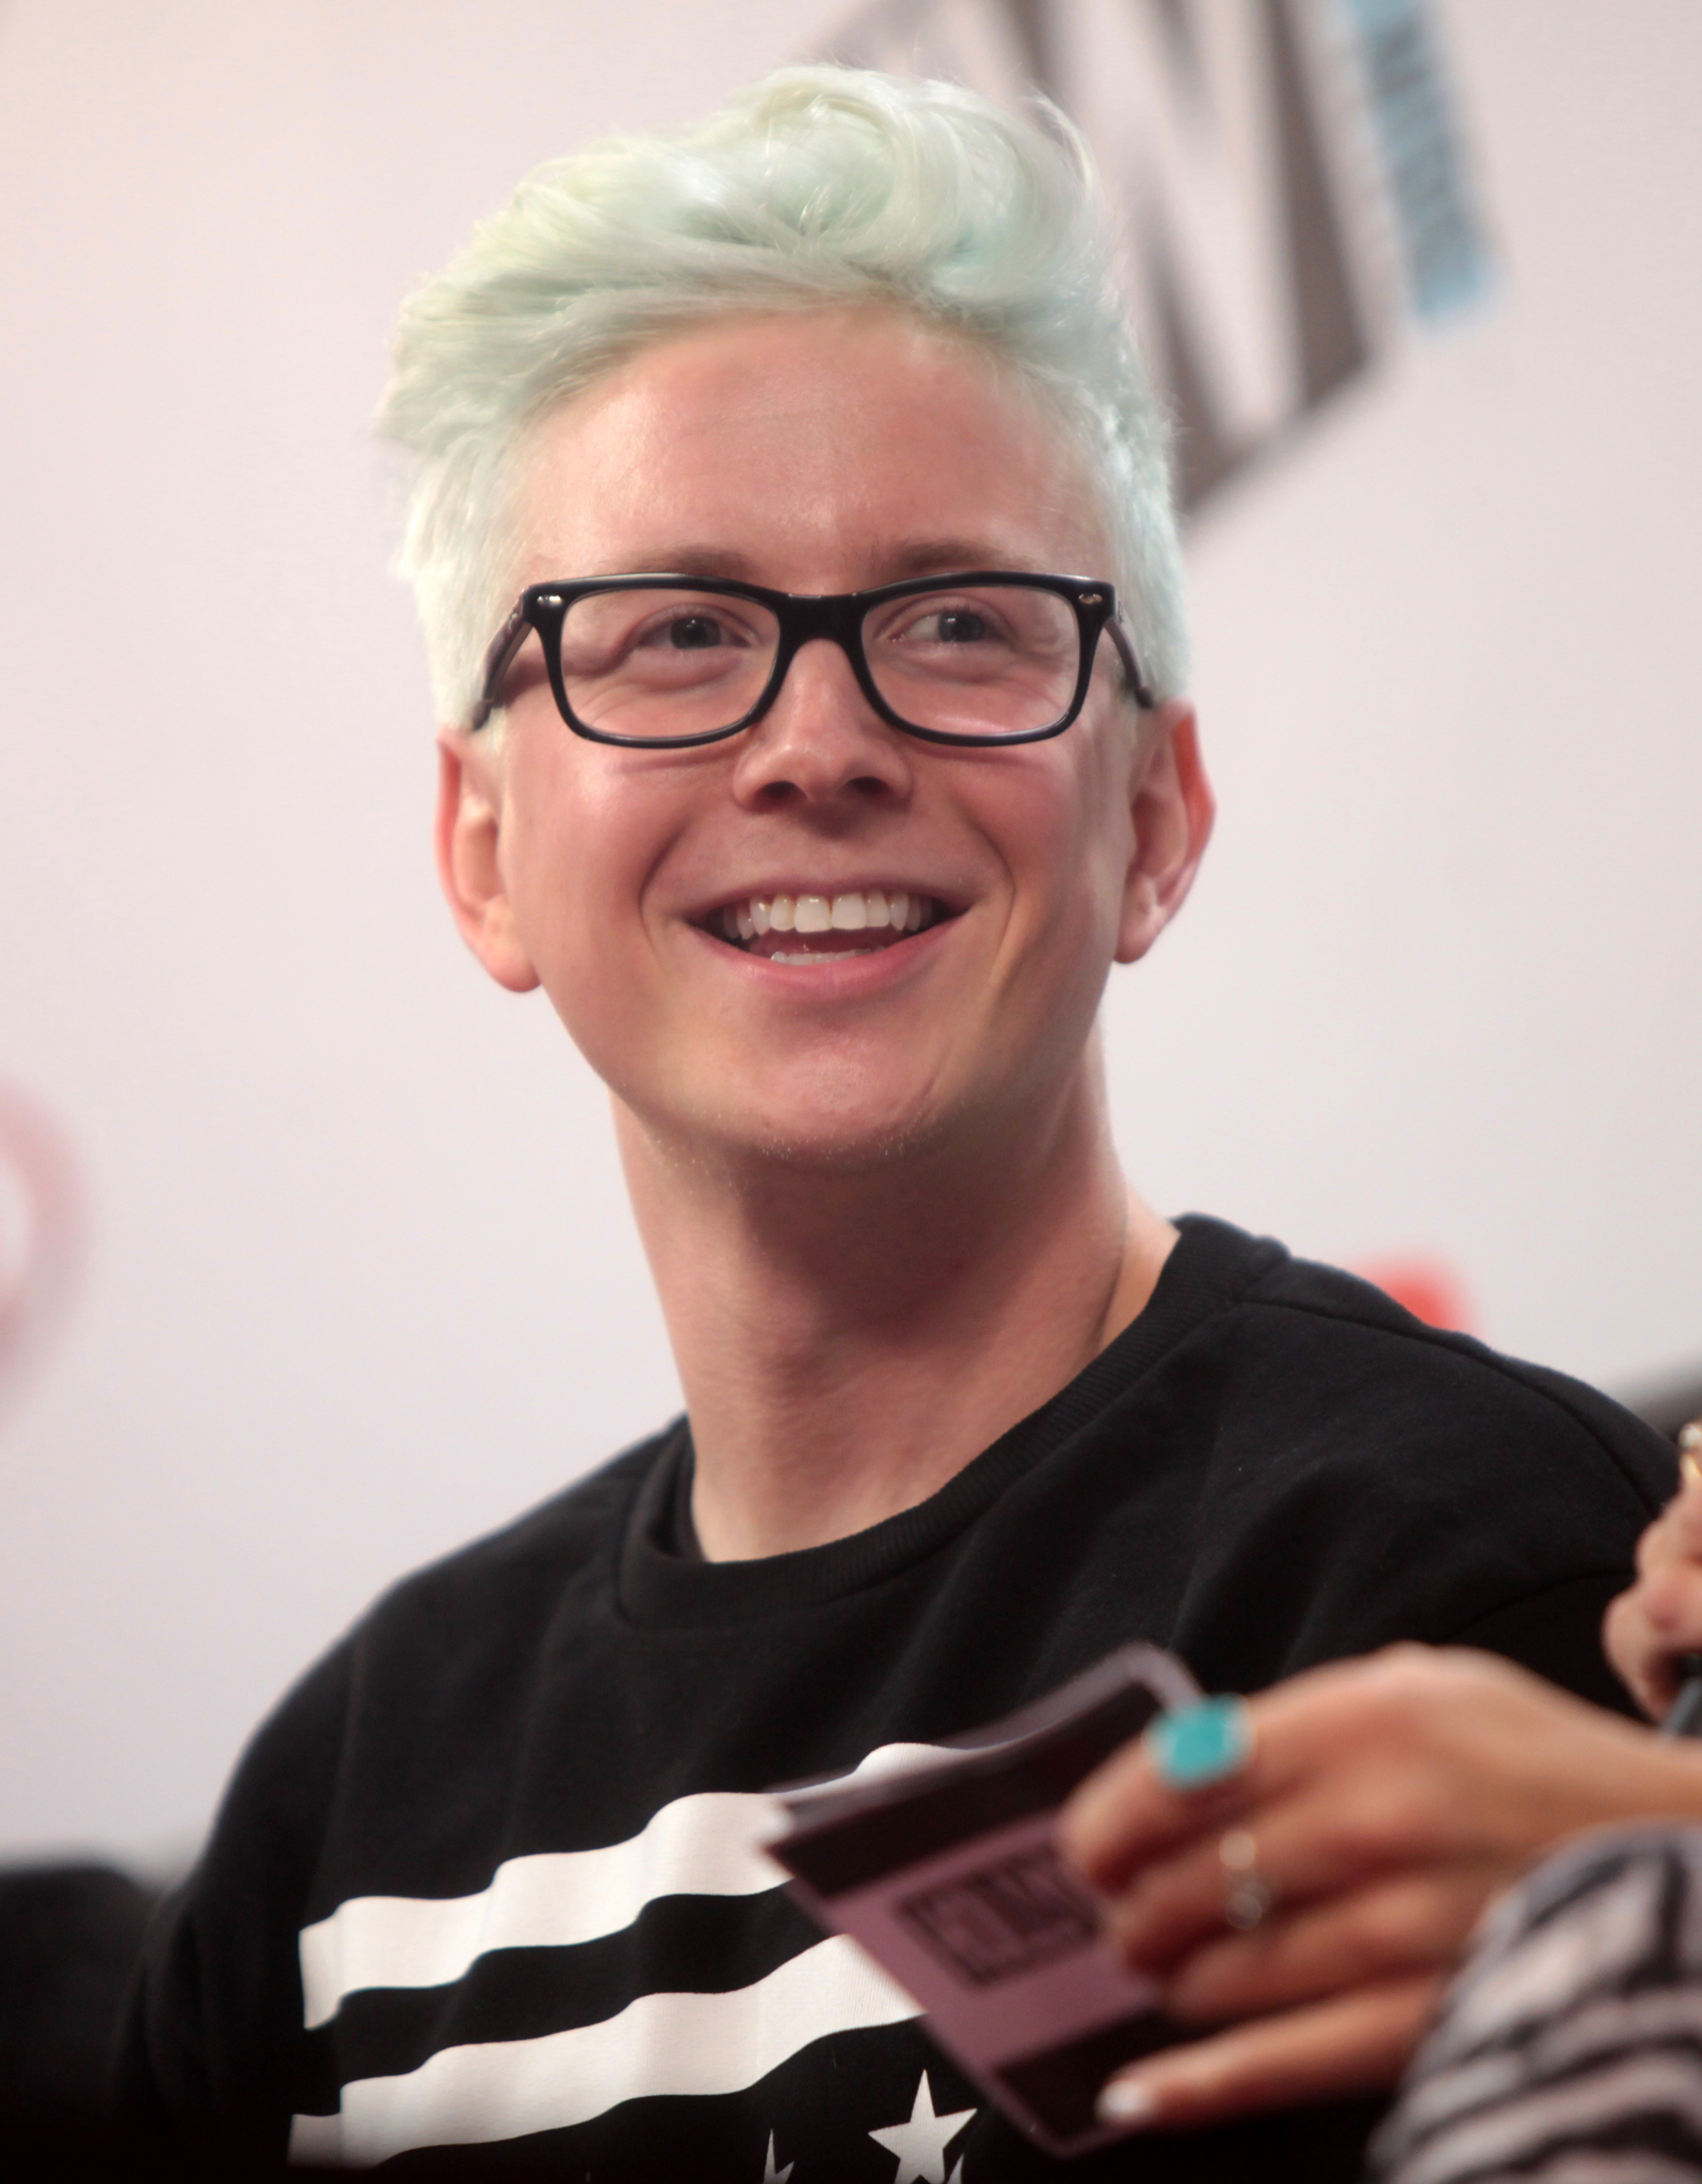 Tyler Oakley earned a  million dollar salary, leaving the net worth at 2 million in 2017